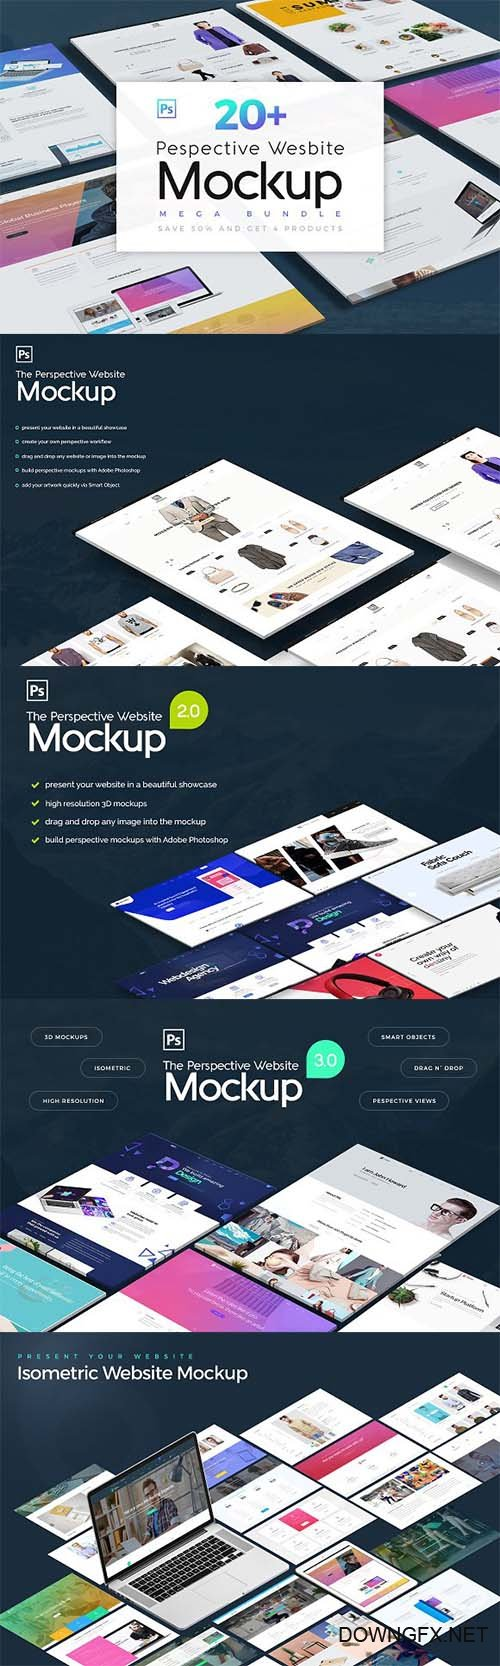 Pespective Website Mockup Bundle 2453008